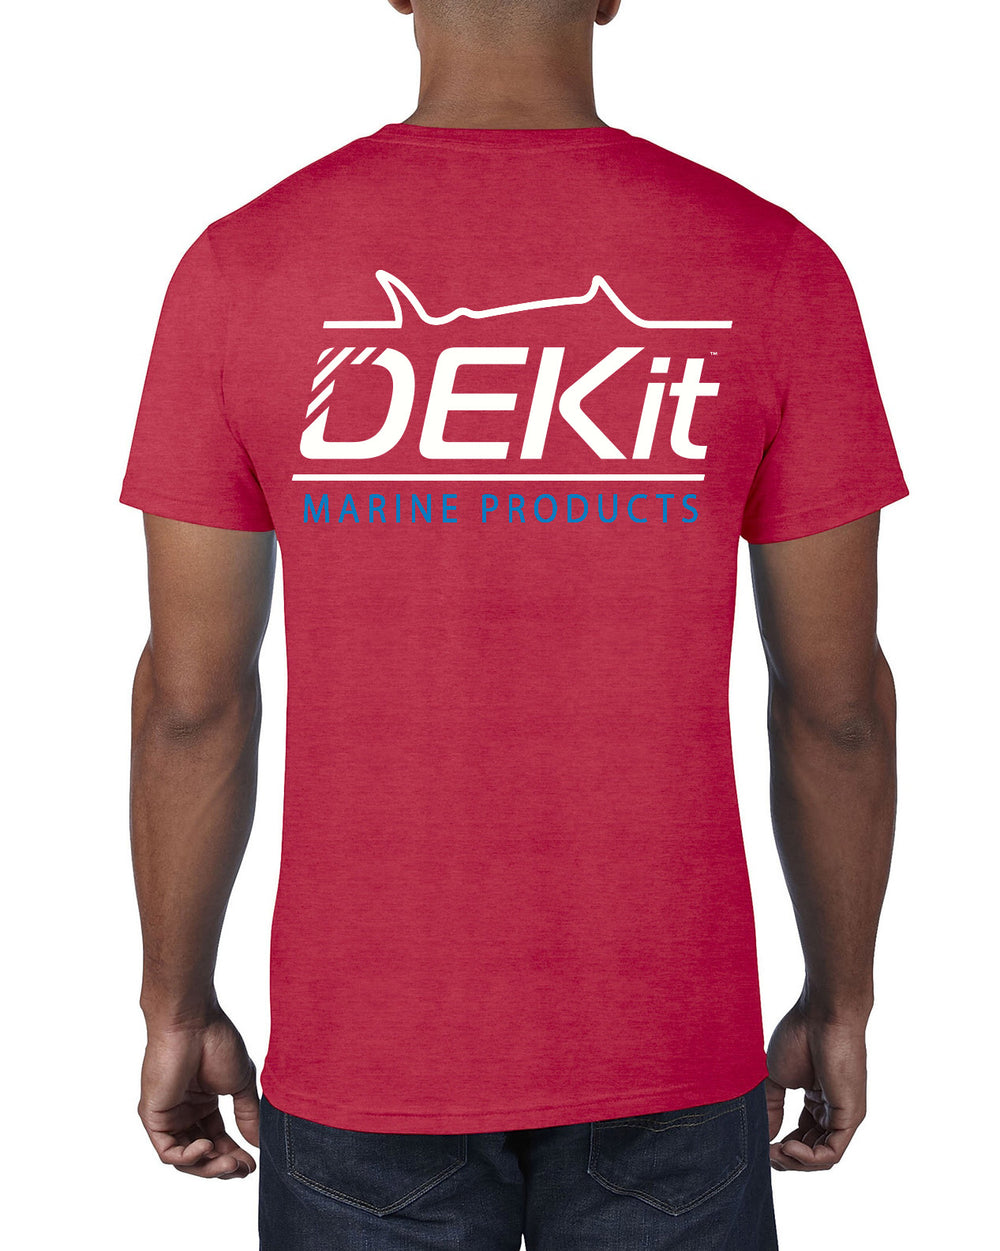 Unisex DEKit Marine Products T-shirt: Heather Red